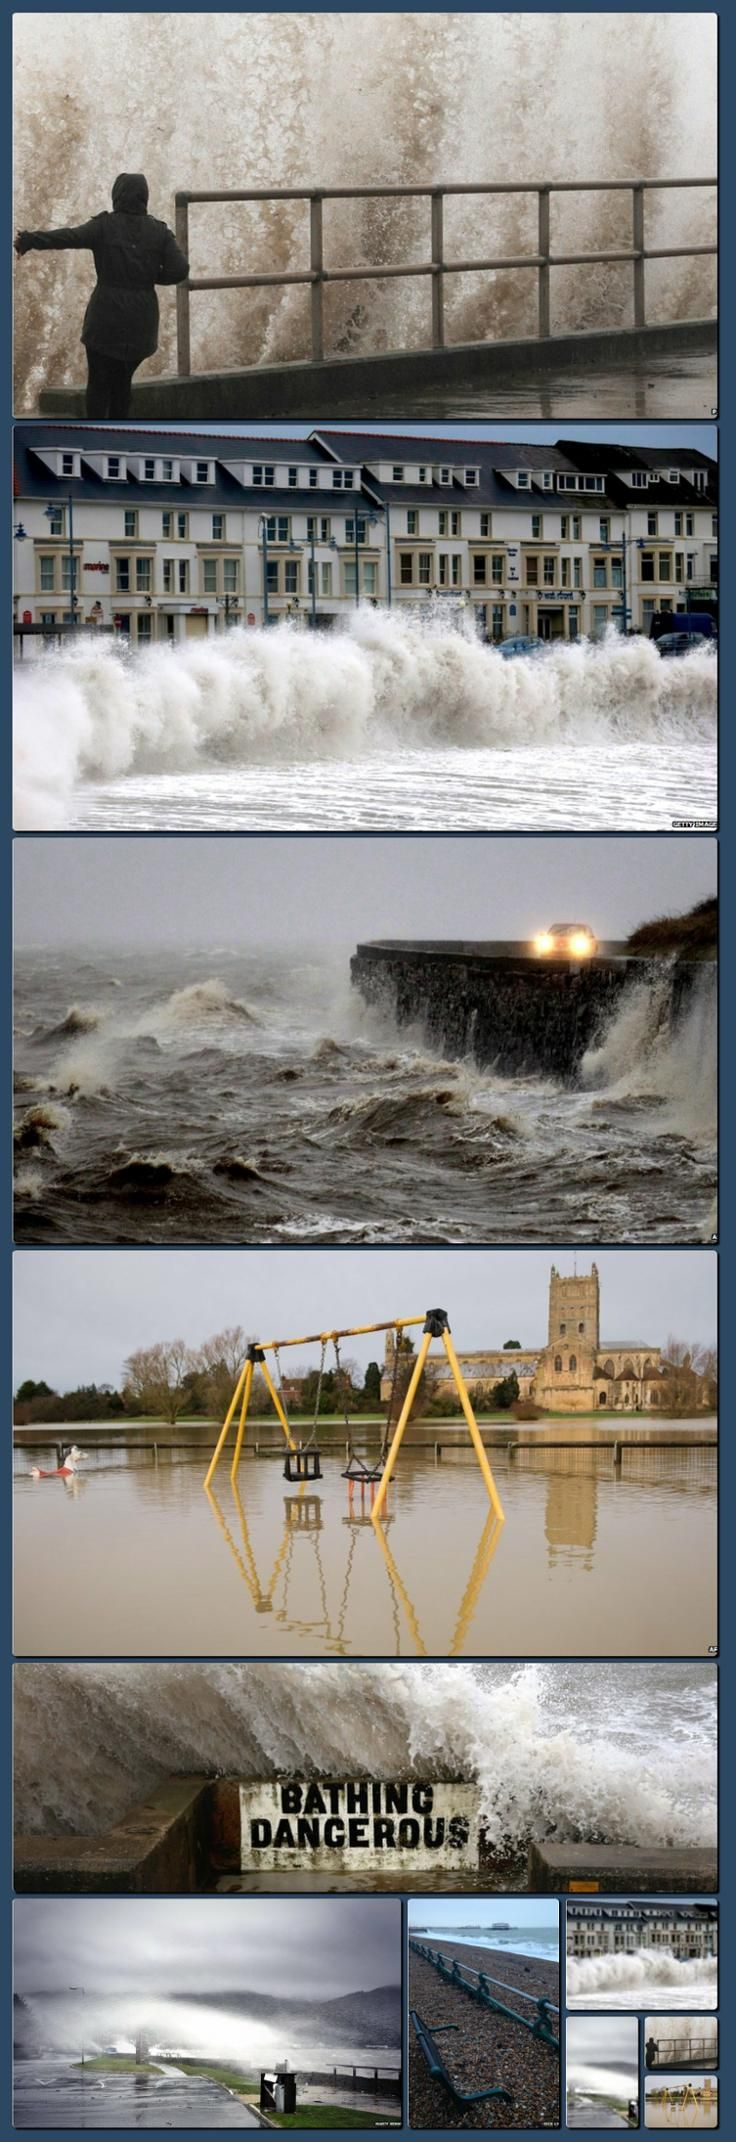 """UK storms disruption: 'People living on the west coast are being warned to expect """"exceptional waves"""" on Monday as what forecasters describe as a highly unusual set of storms continues to cause disruption' [Collage made with one click using http://pagecollage.com] #pagecollage"""